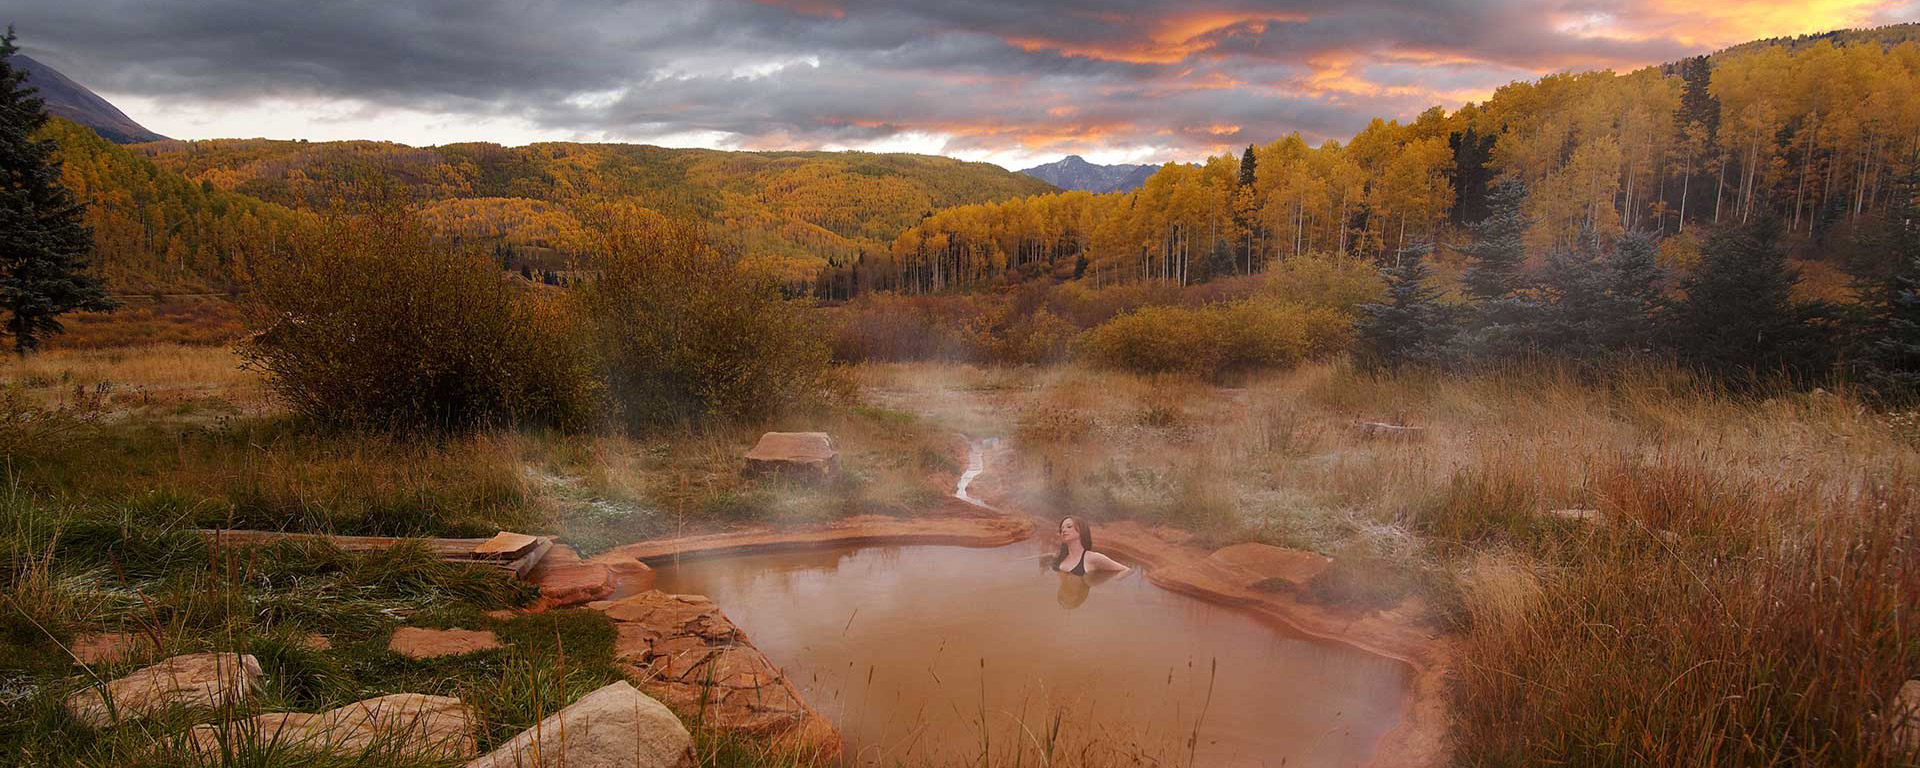 Dunton Hot Springs - ÉTATS-UNIS